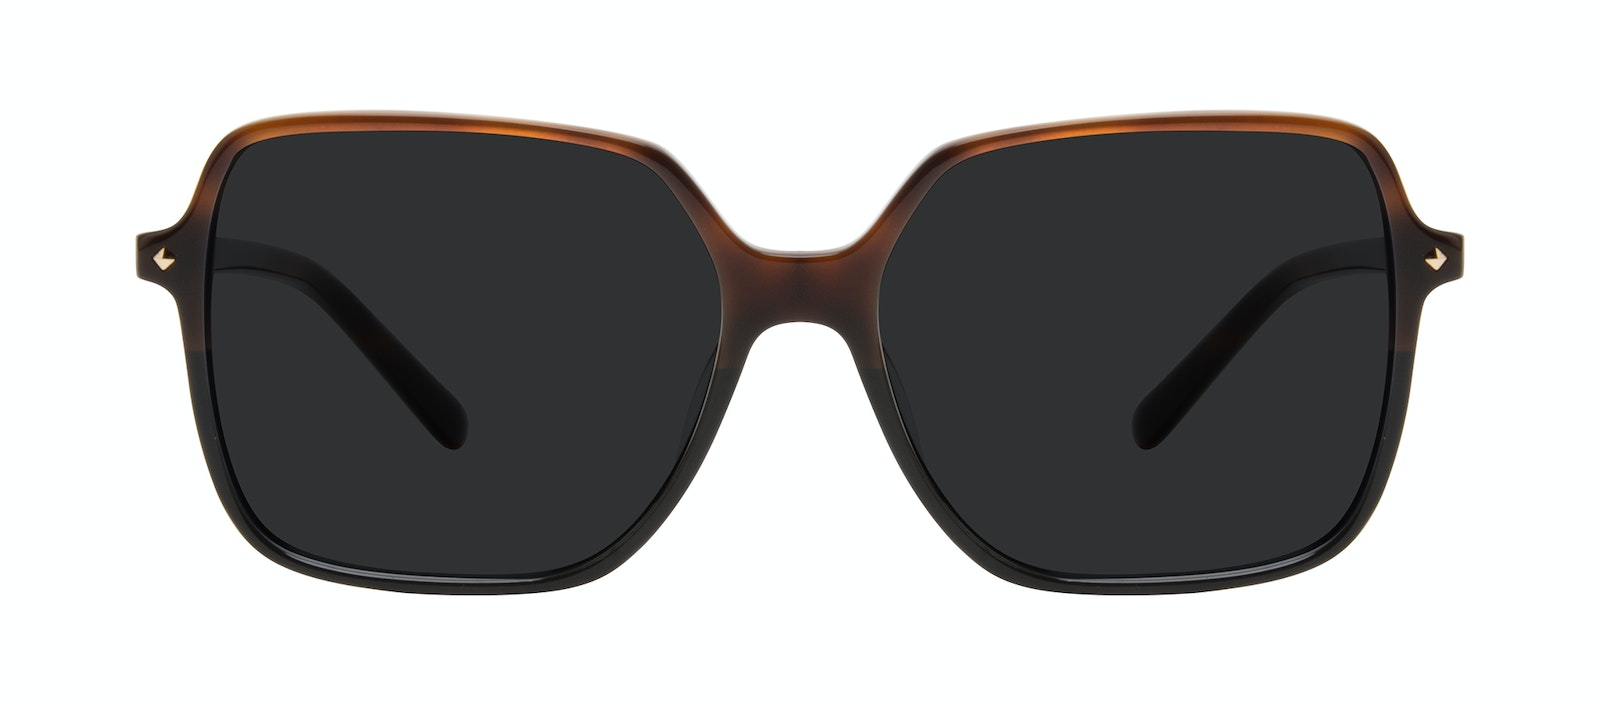 Affordable Fashion Glasses Square Sunglasses Women Major Tawny Front